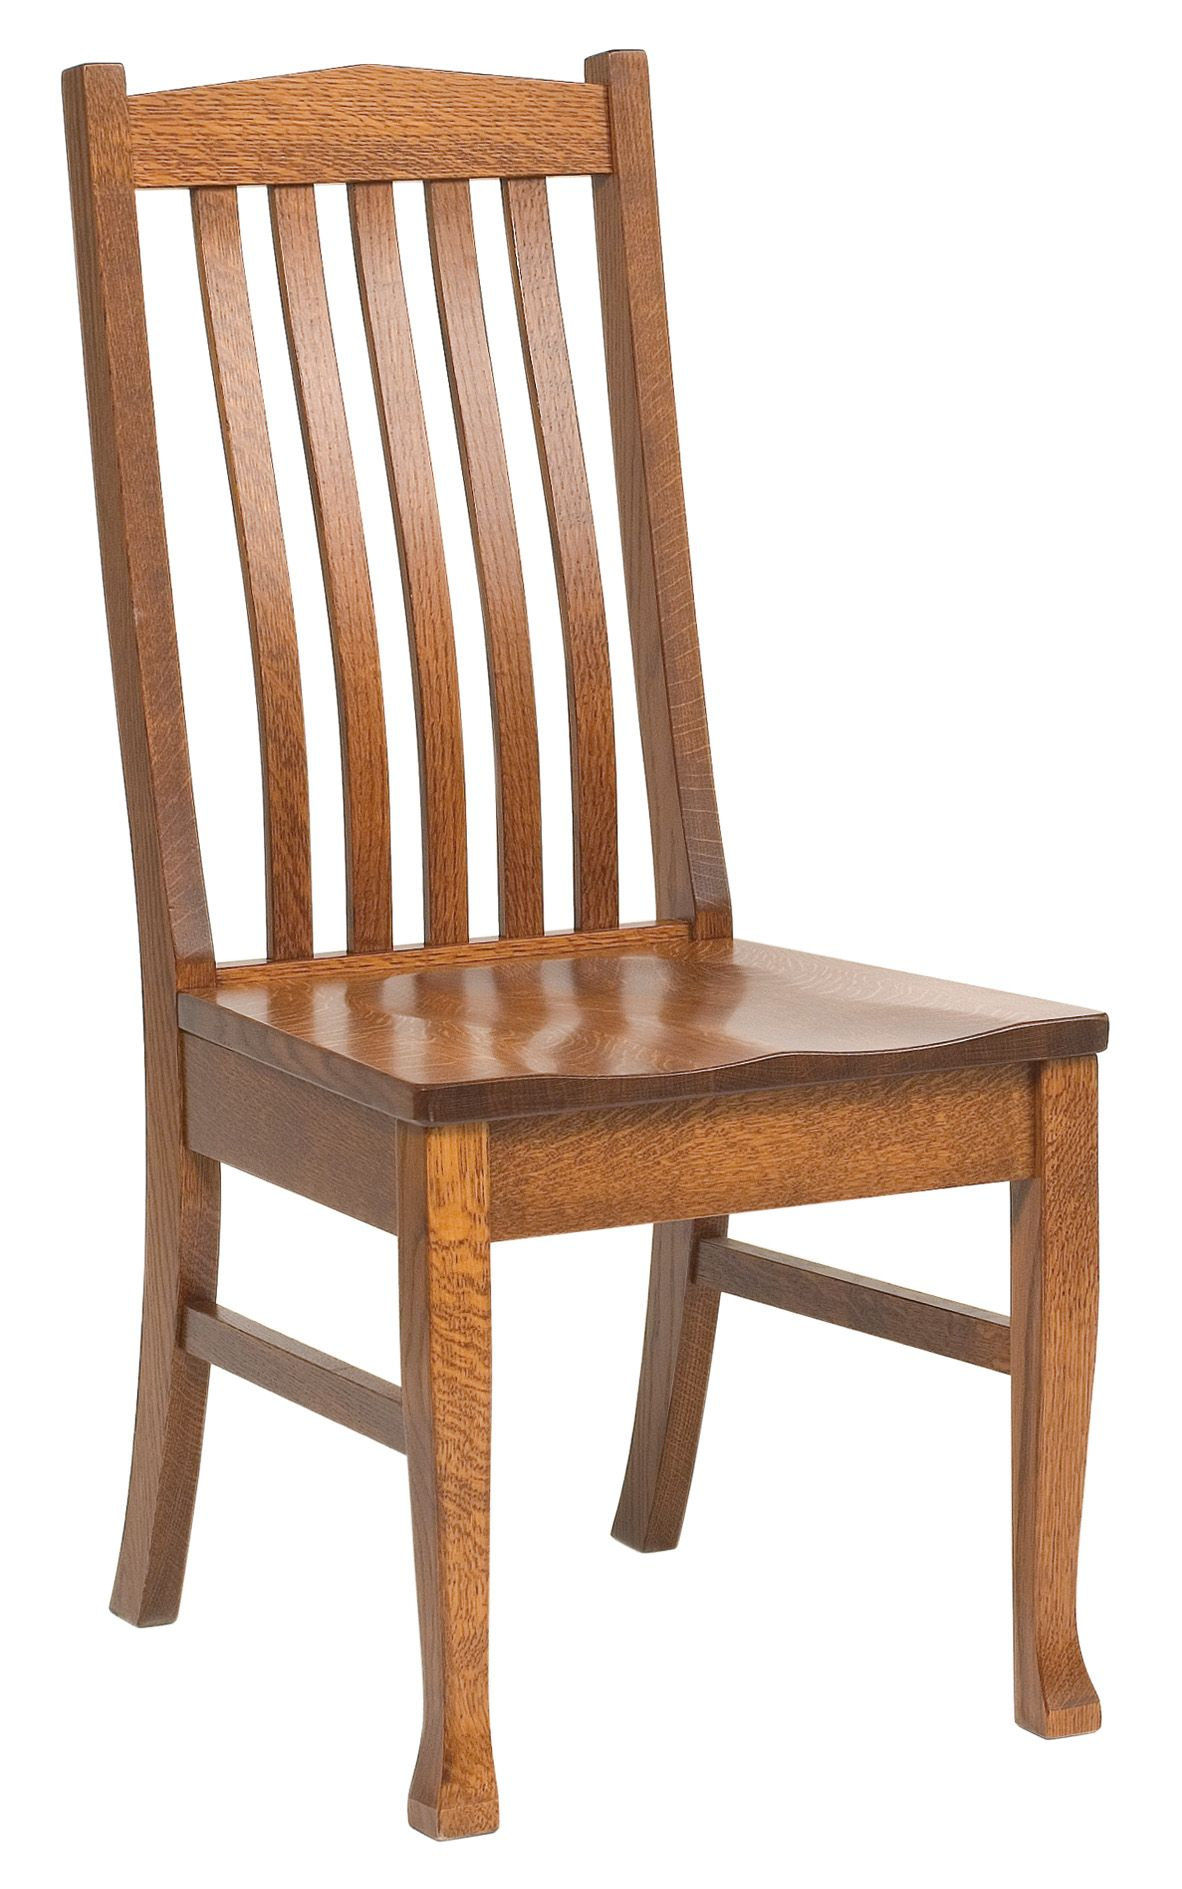 craftsmen furniture. Handcrafted For Your Home By Skilled Amish Craftsmen, The Heritage Mission Dining Chairs Offer A Timeless Design That Never Loses Its Appeal. Craftsmen Furniture P